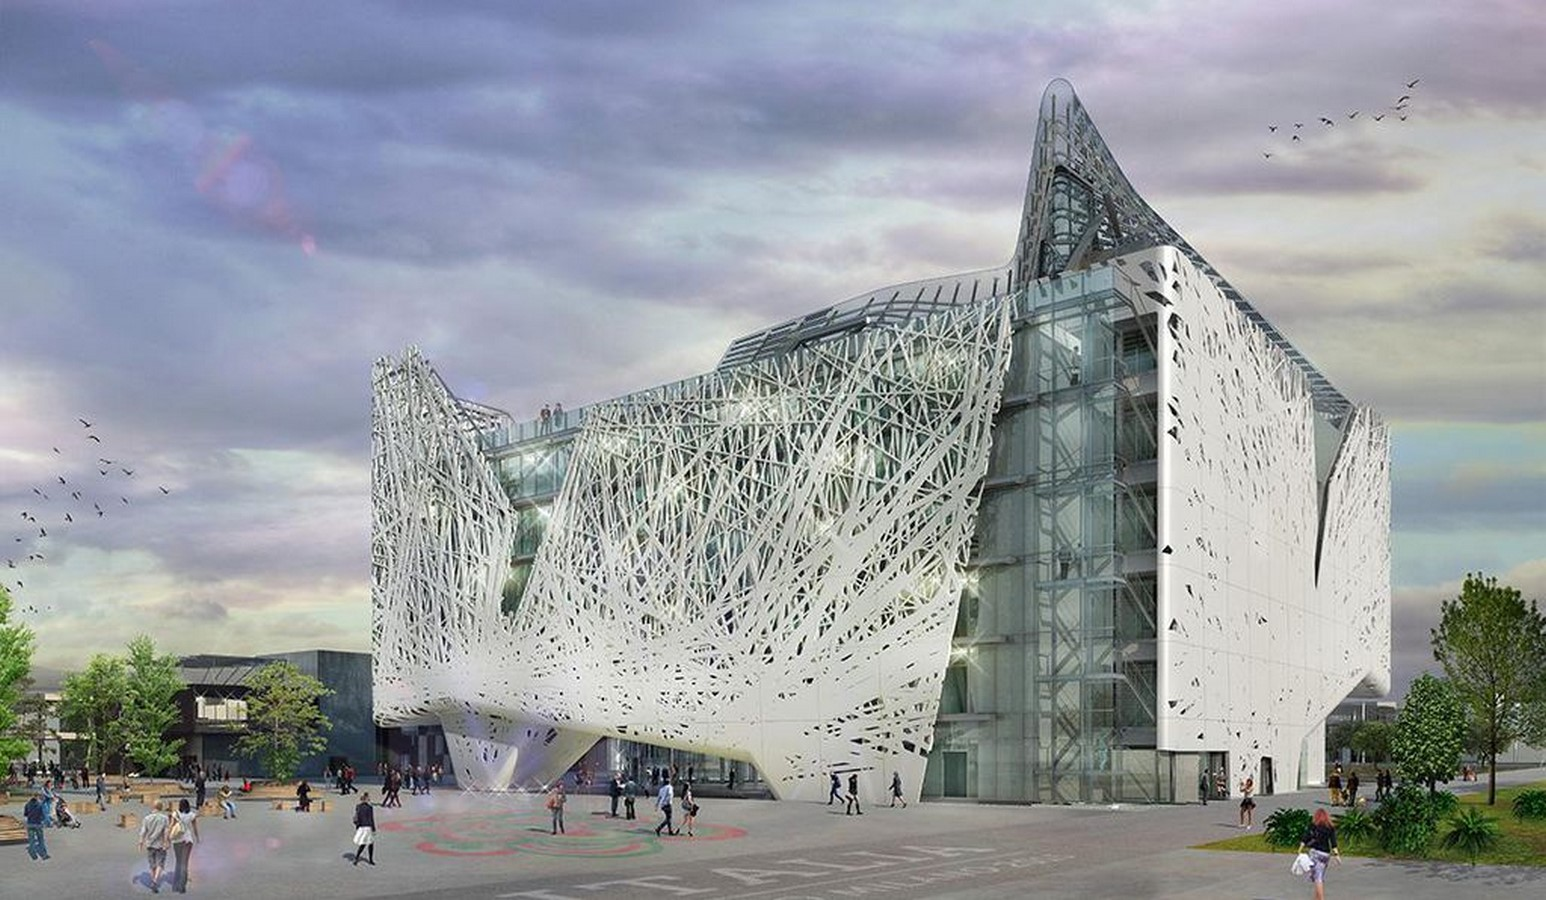 An Ornate Double Skin that Filters Air Pollution - Sheet3